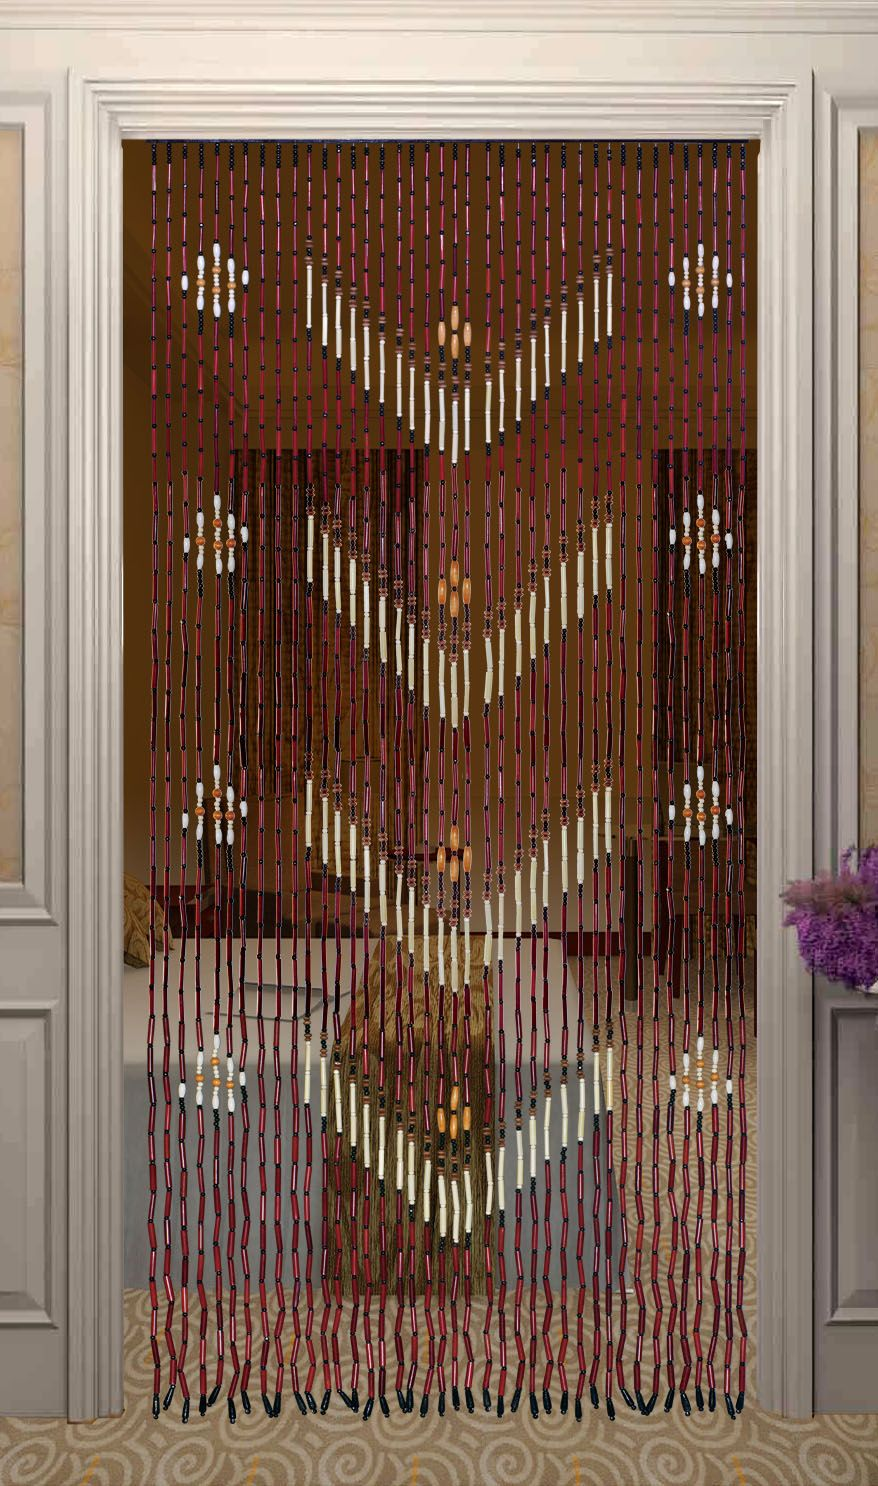 Bamboo Door Beads Vertical Blinds Sheer Curtain For Living Window Shade  Screen Finished Partition Purdah Entranceway Screening | Home Decor |  Pinterest ...